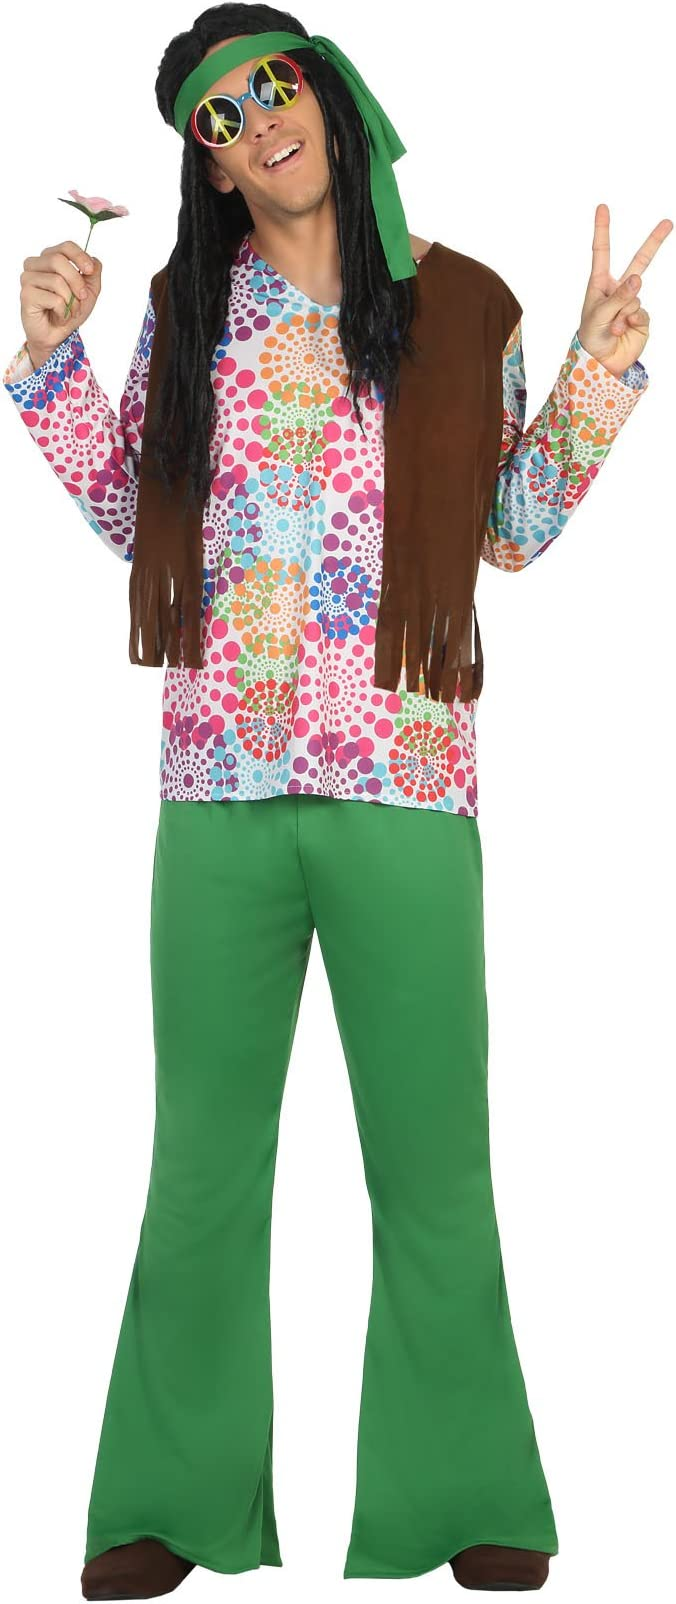 Atosa-16494 Disfraz Hippie, Color Verde, M-L (16494): Amazon.es ...